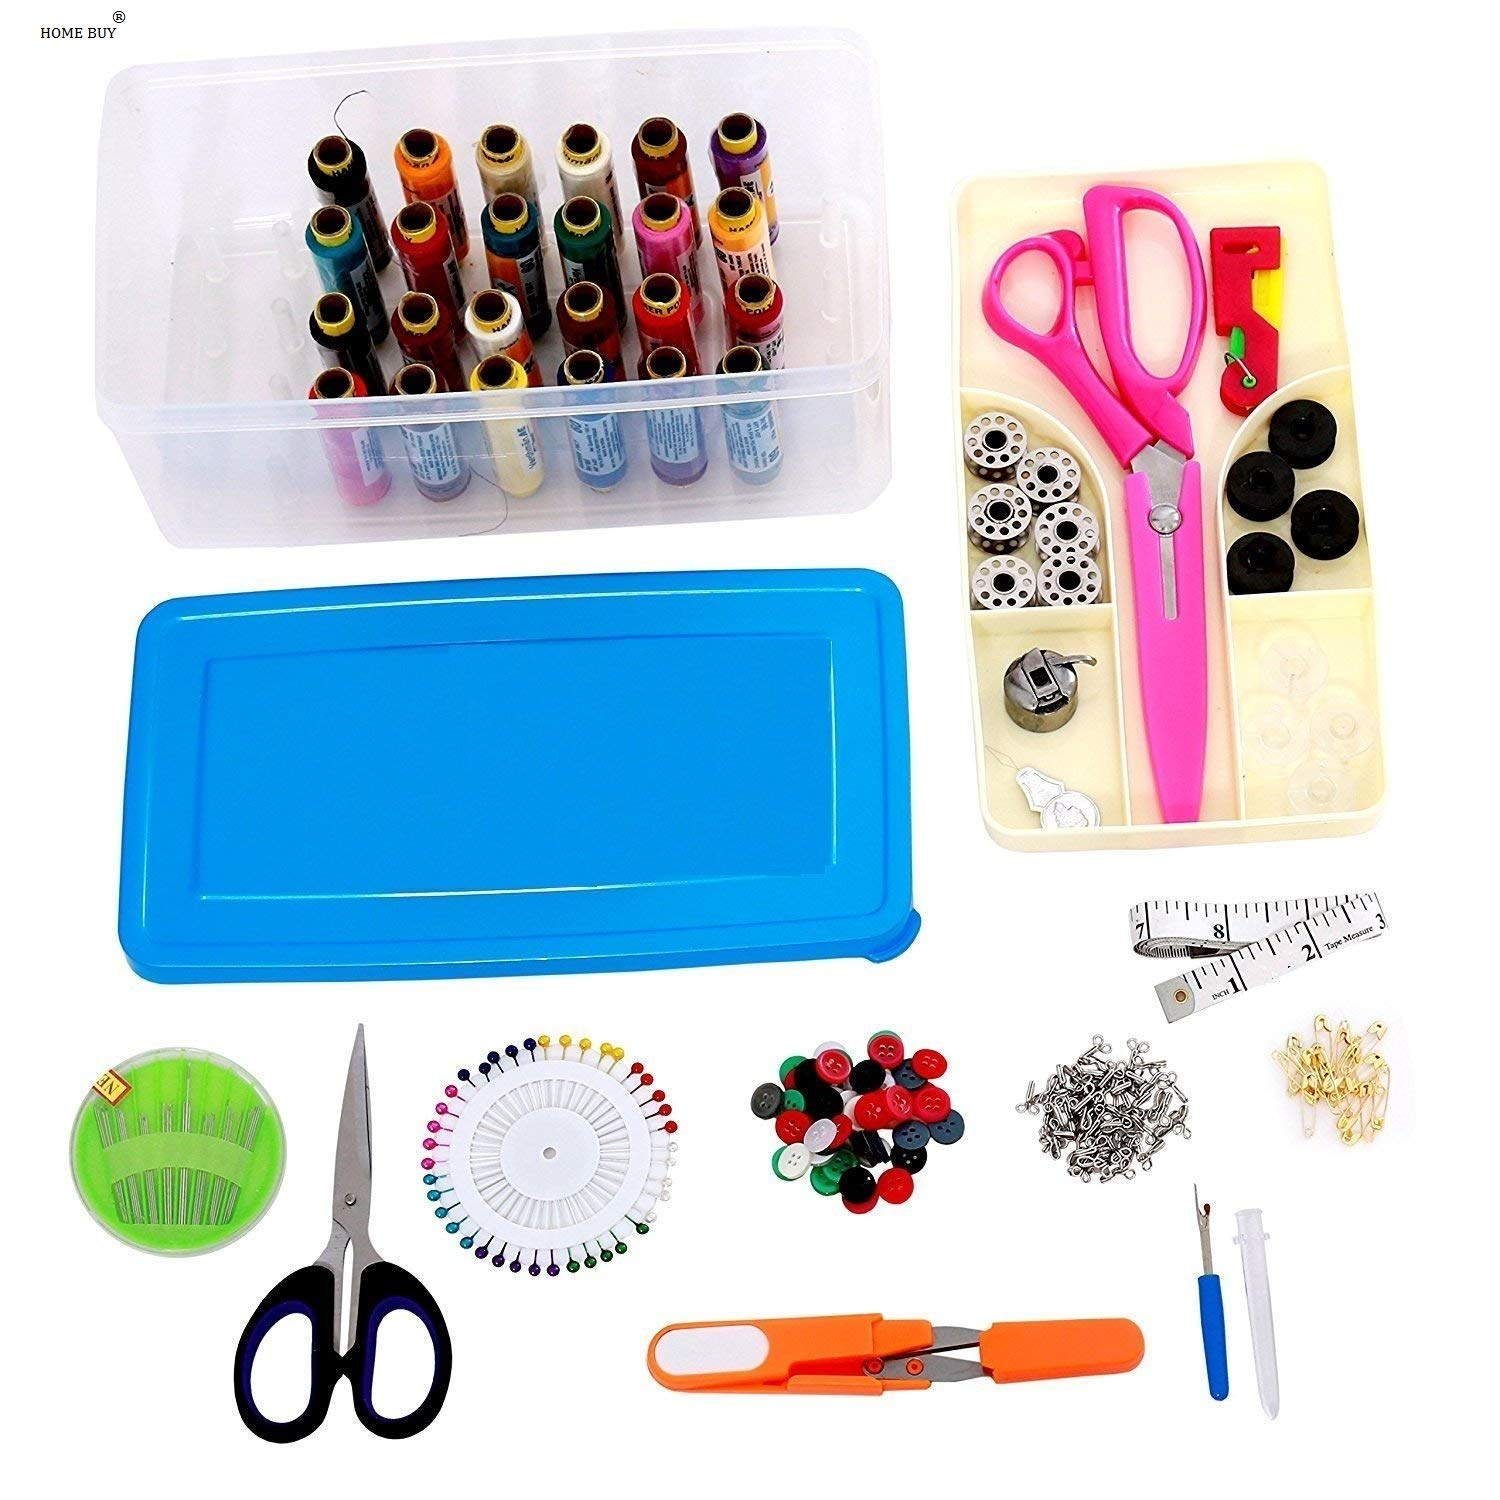 Sewing Kits Cloth Buttons Craft Scissors Sewing Box Thread Stitches Needles Tool